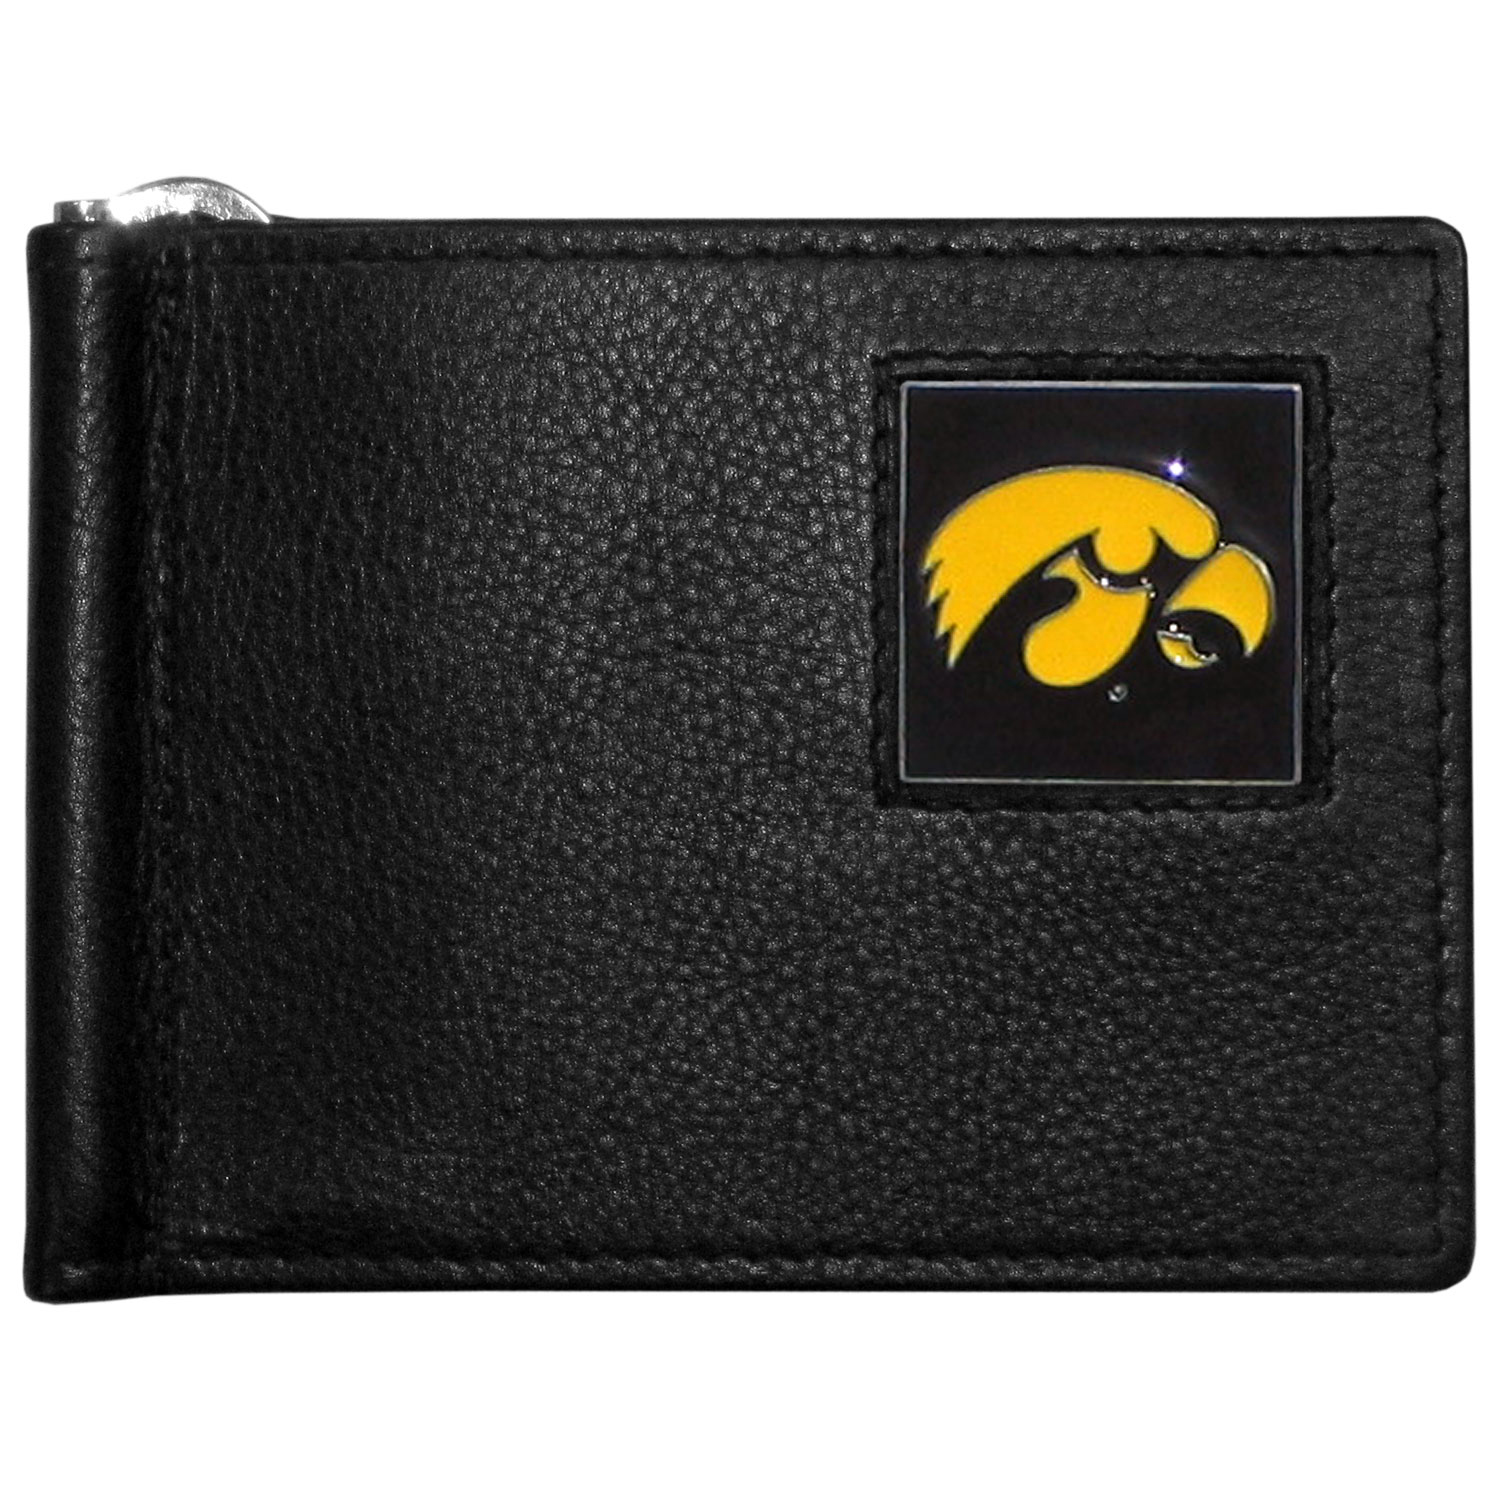 Iowa Hawkeyes Leather Bill Clip Wallet - This cool new style wallet features an inner, metal bill clip that lips up for easy access. The super slim wallet holds tons of stuff with ample pockets, credit card slots & windowed ID slot. The wallet is made of genuine fine grain leather and it finished with a metal Iowa Hawkeyes emblem. The wallet is shipped in gift box packaging.